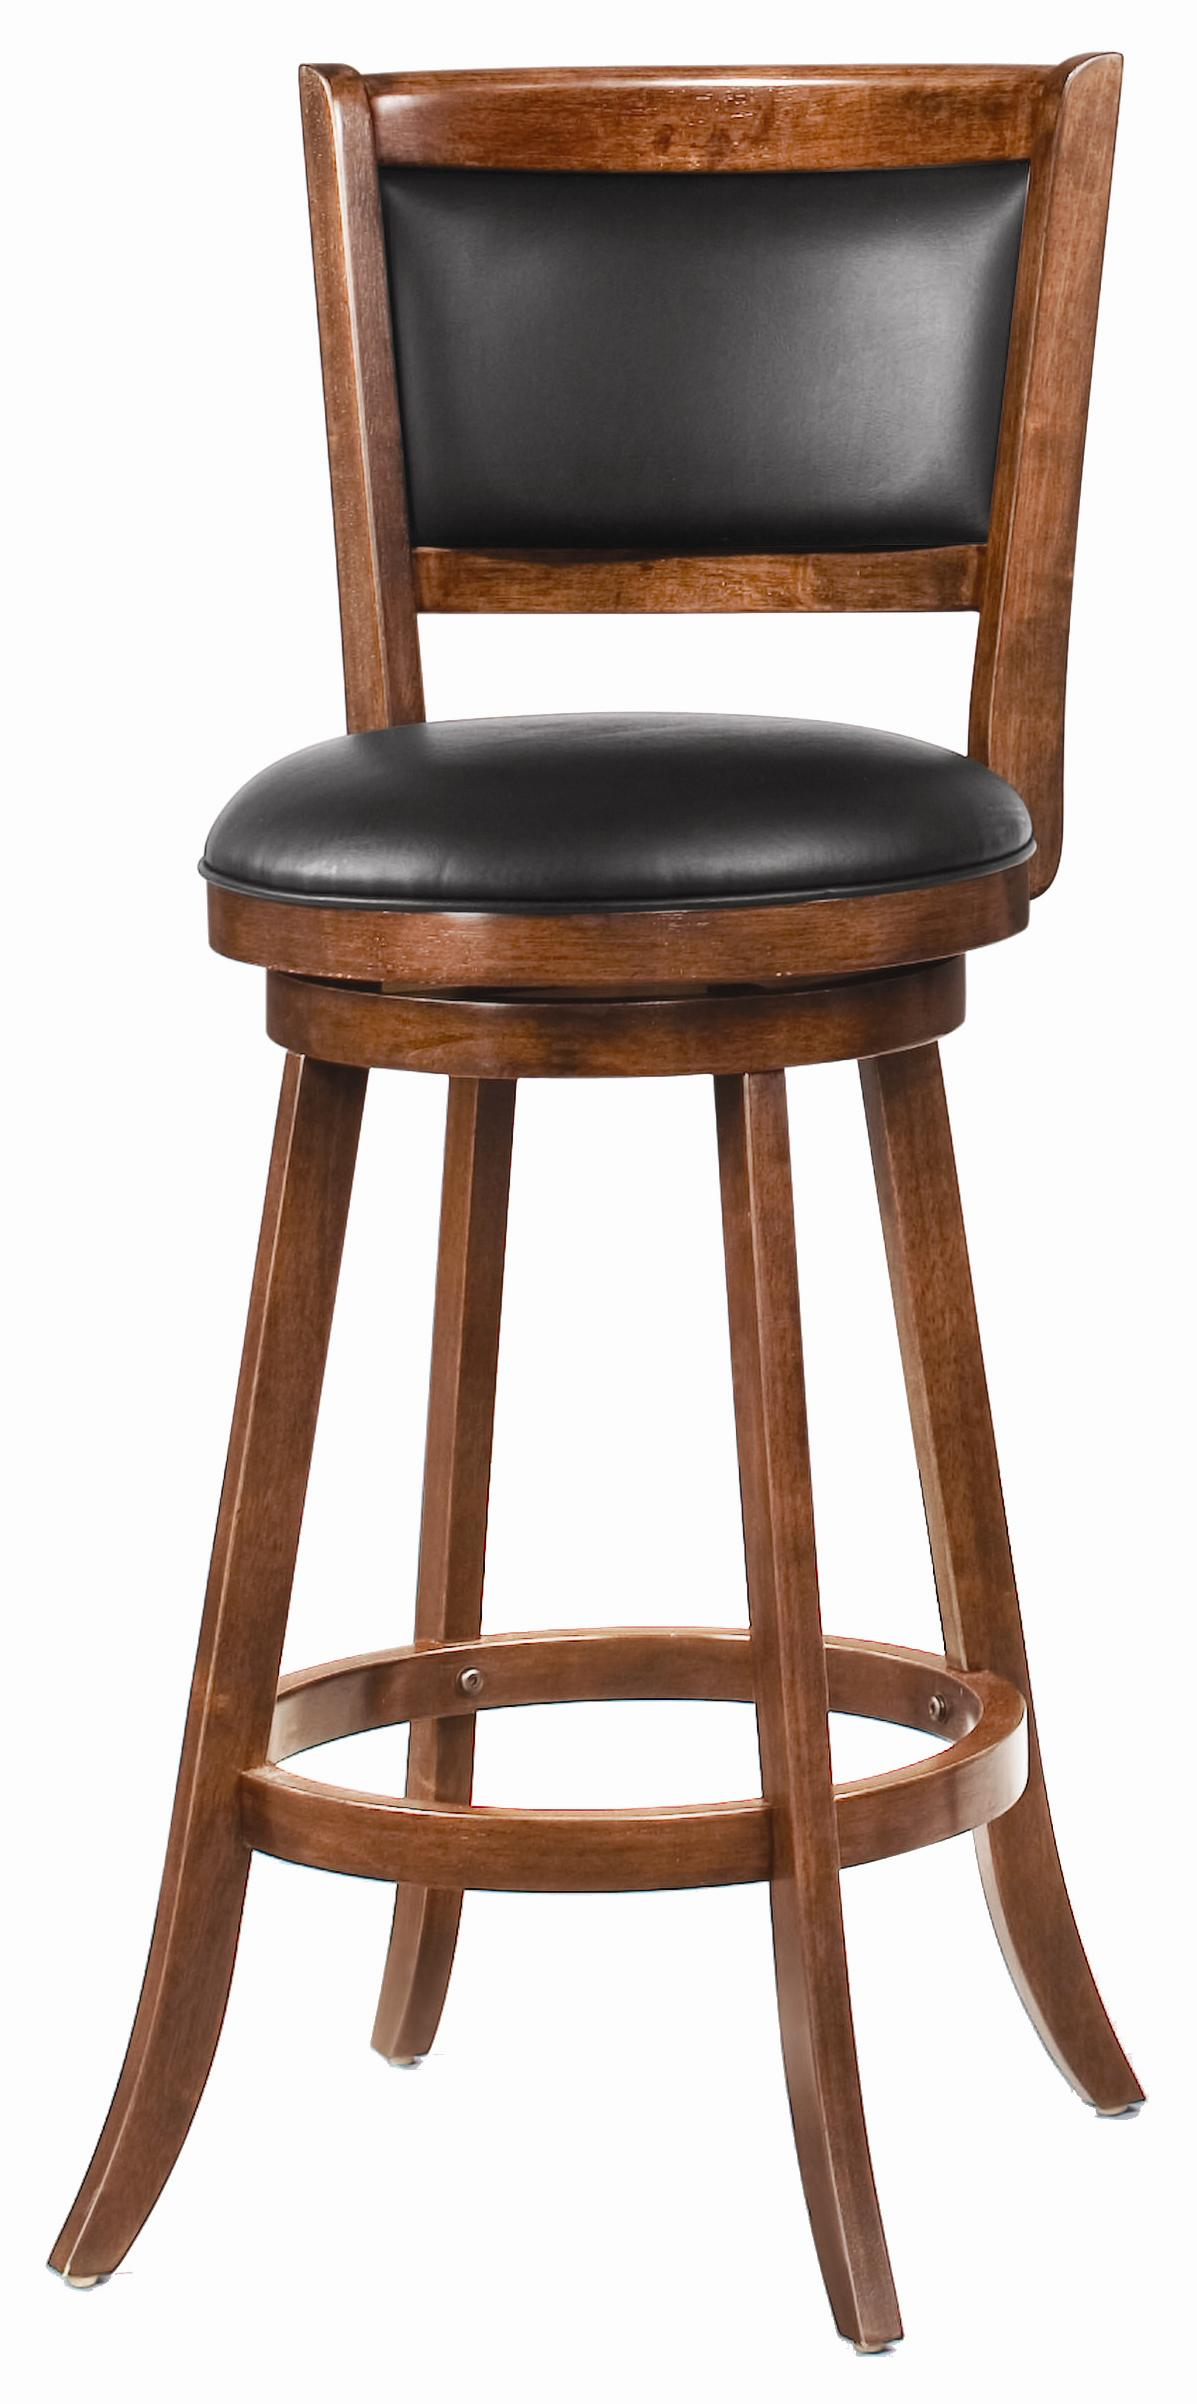 Fabulous Dark Espresso Swivel Bar Stool With Upholstered Seat Set Of 2 Gmtry Best Dining Table And Chair Ideas Images Gmtryco